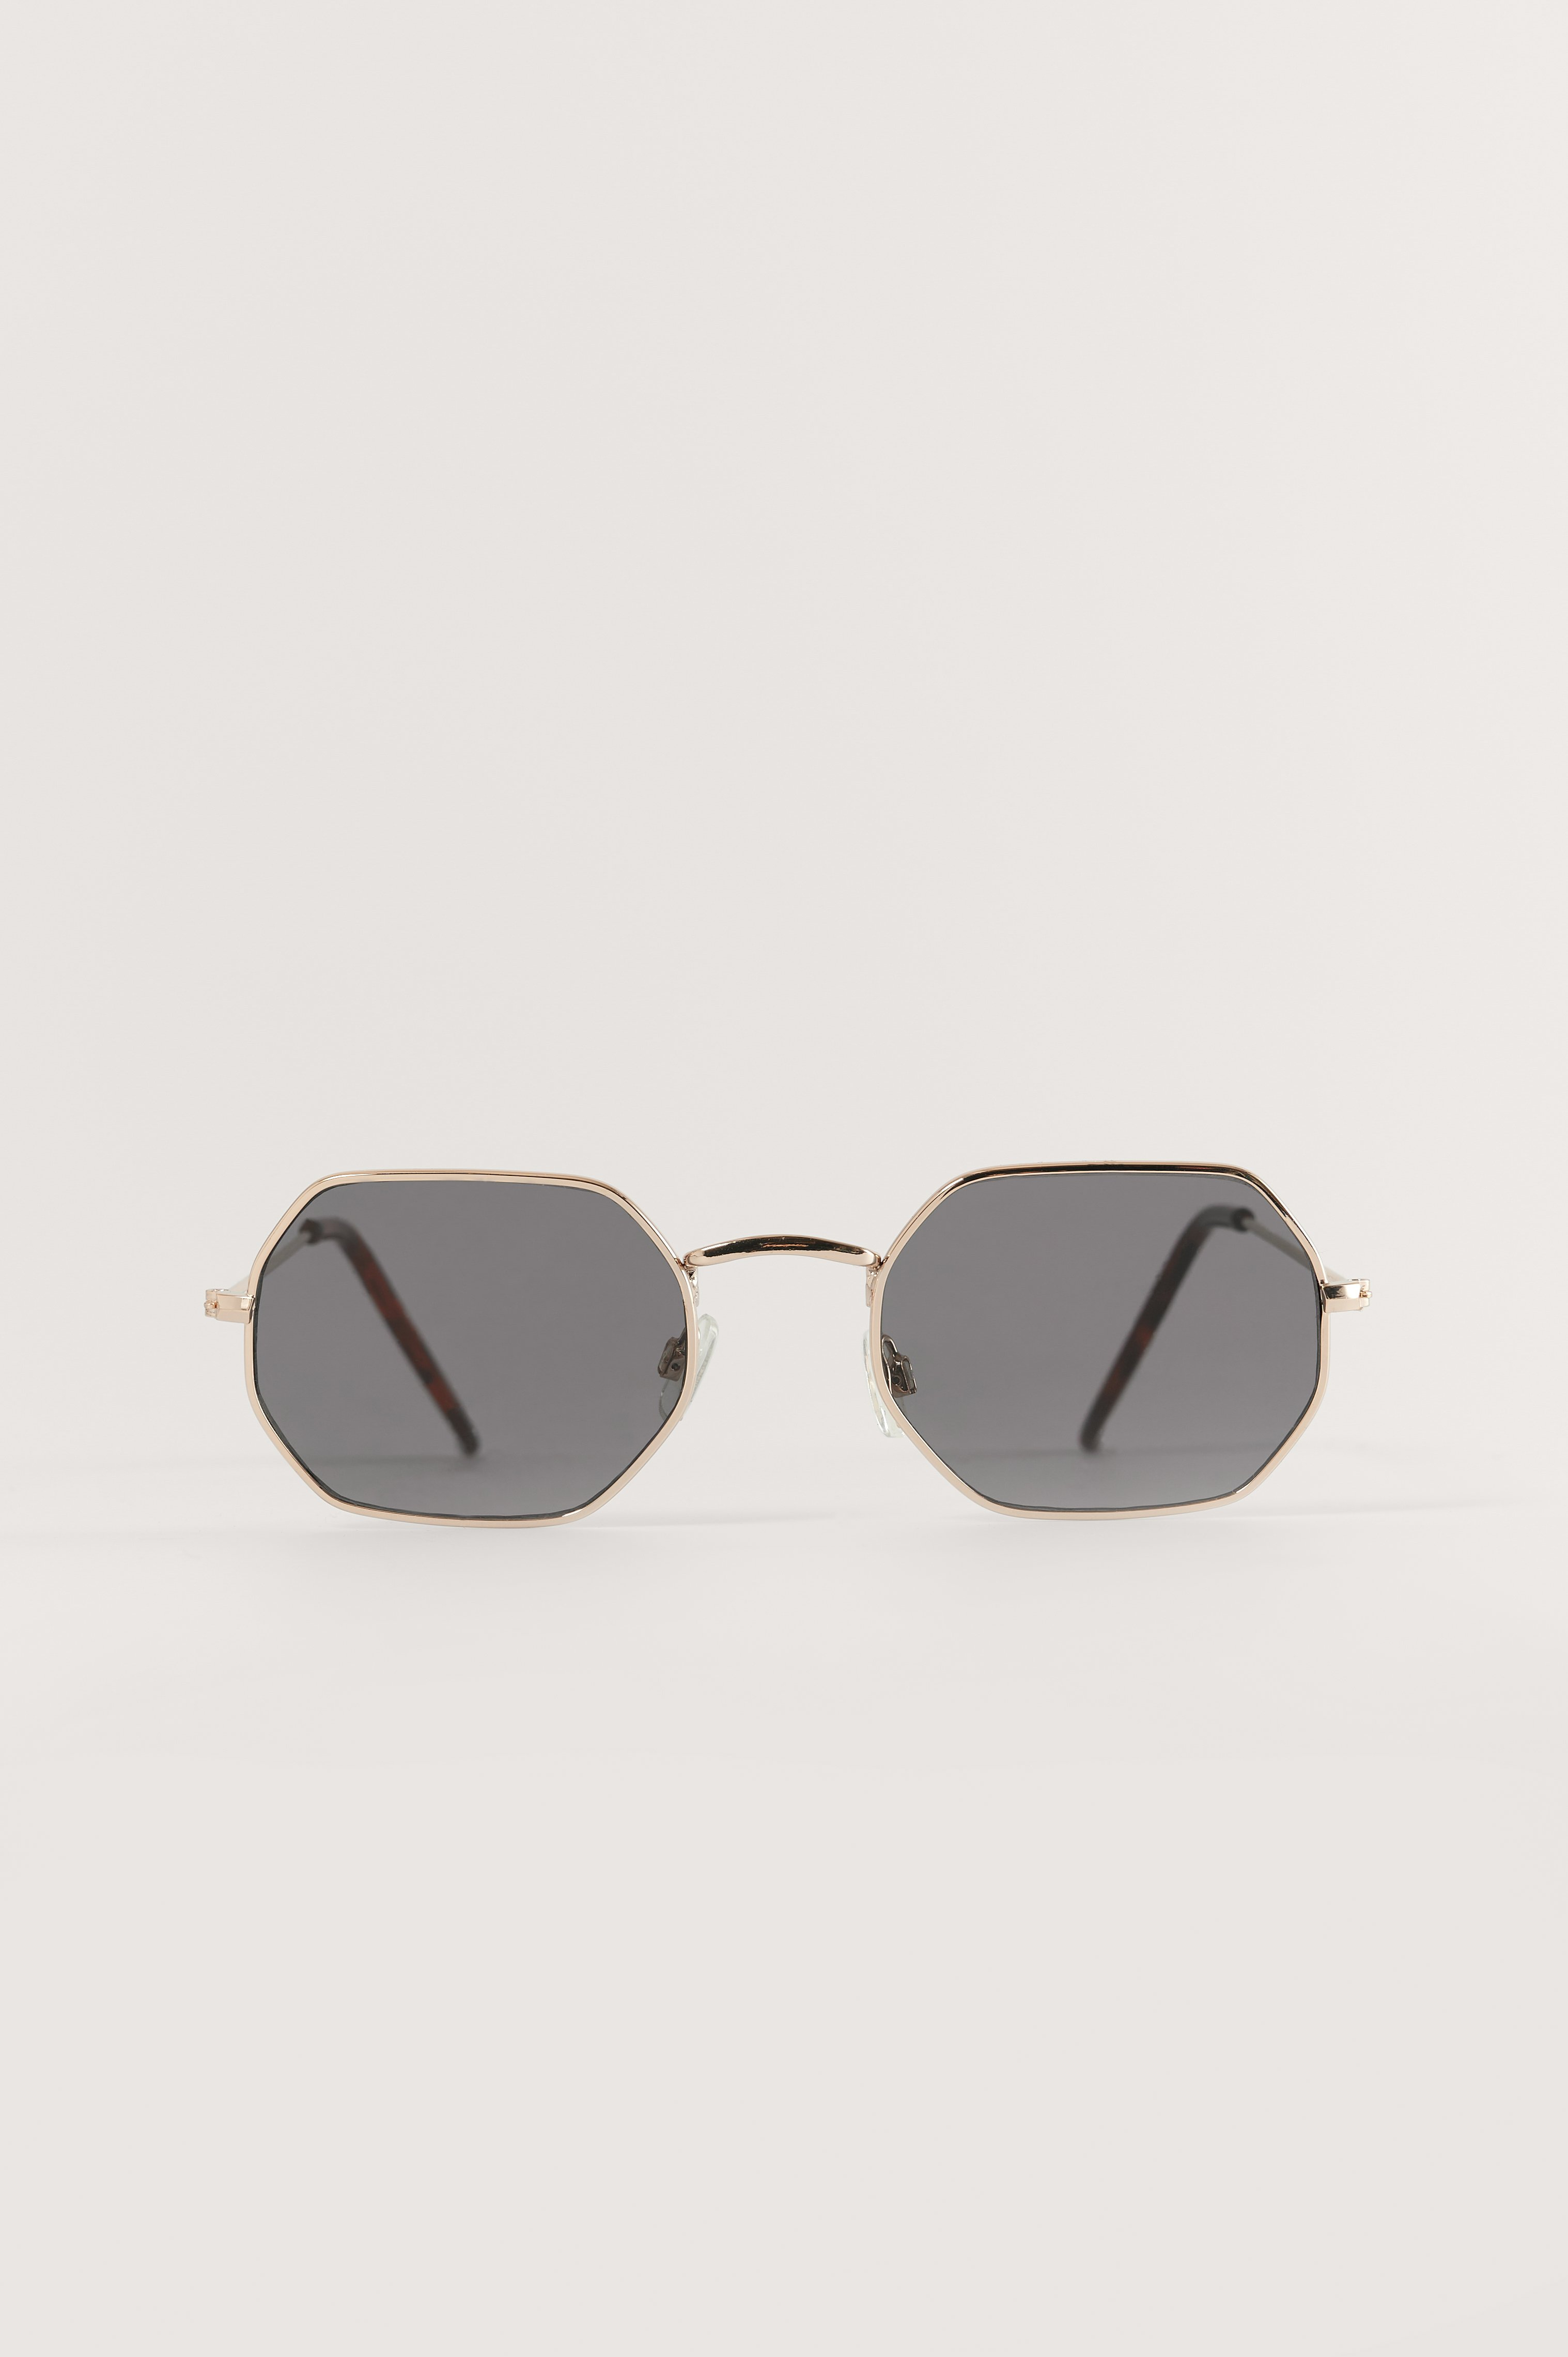 Black/Gold Octagon Frame Sunglasses